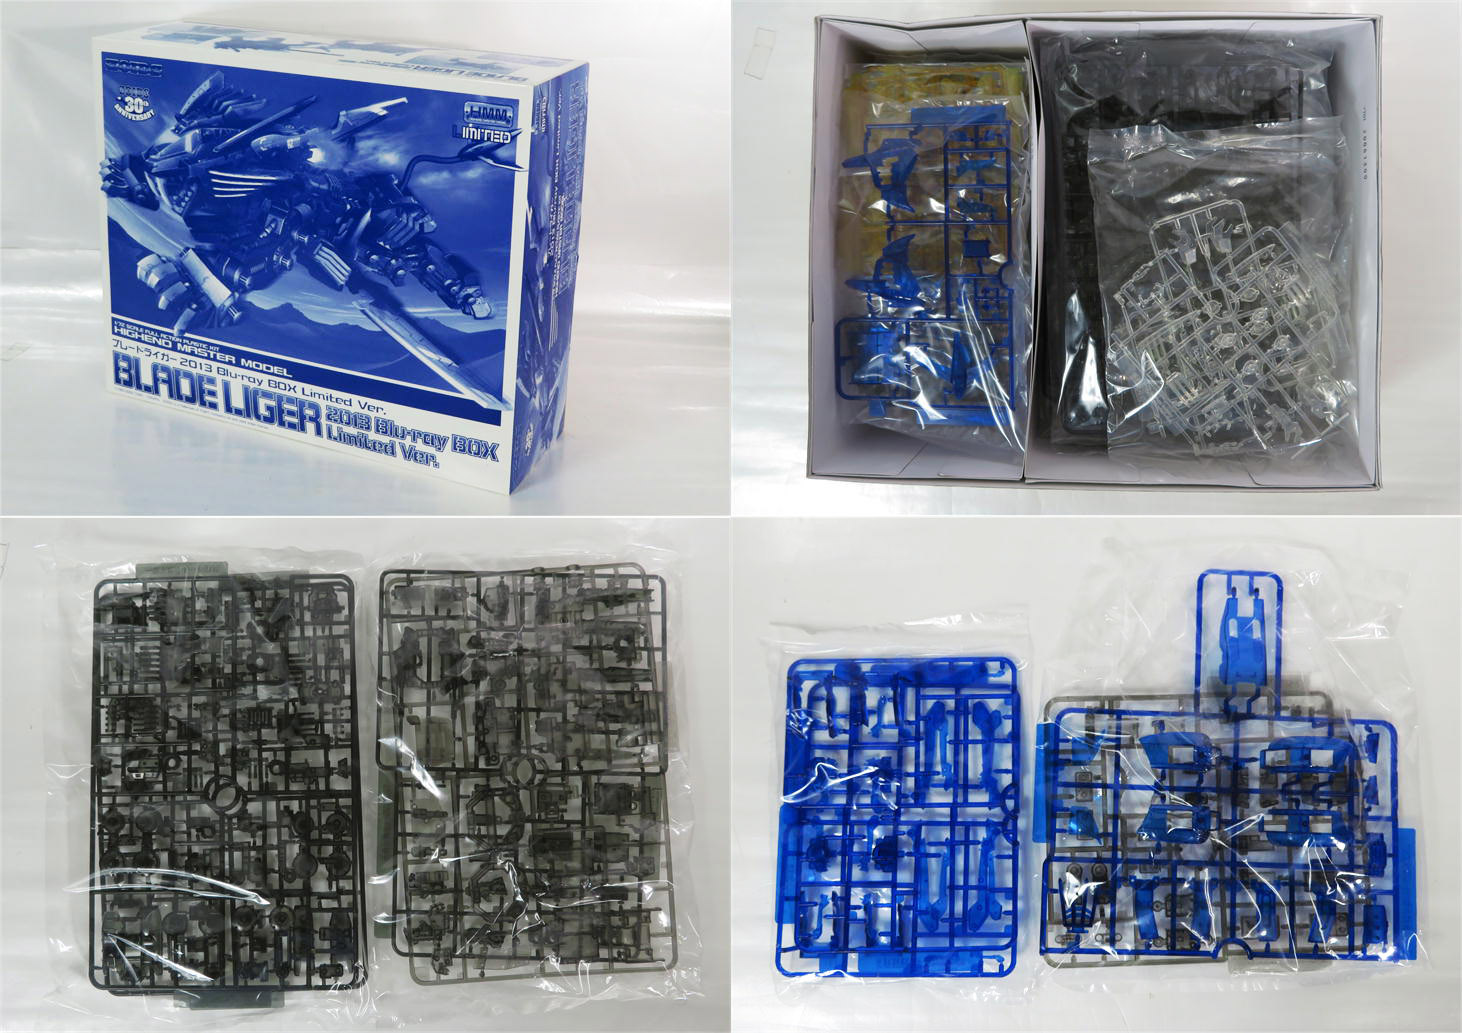 TAKARA TOMY << TAKARA TOMY >> 1/72 ゾイドブレードライガー 2013 Blu-ray BOX Limited  Ver  Only as for the plastic model